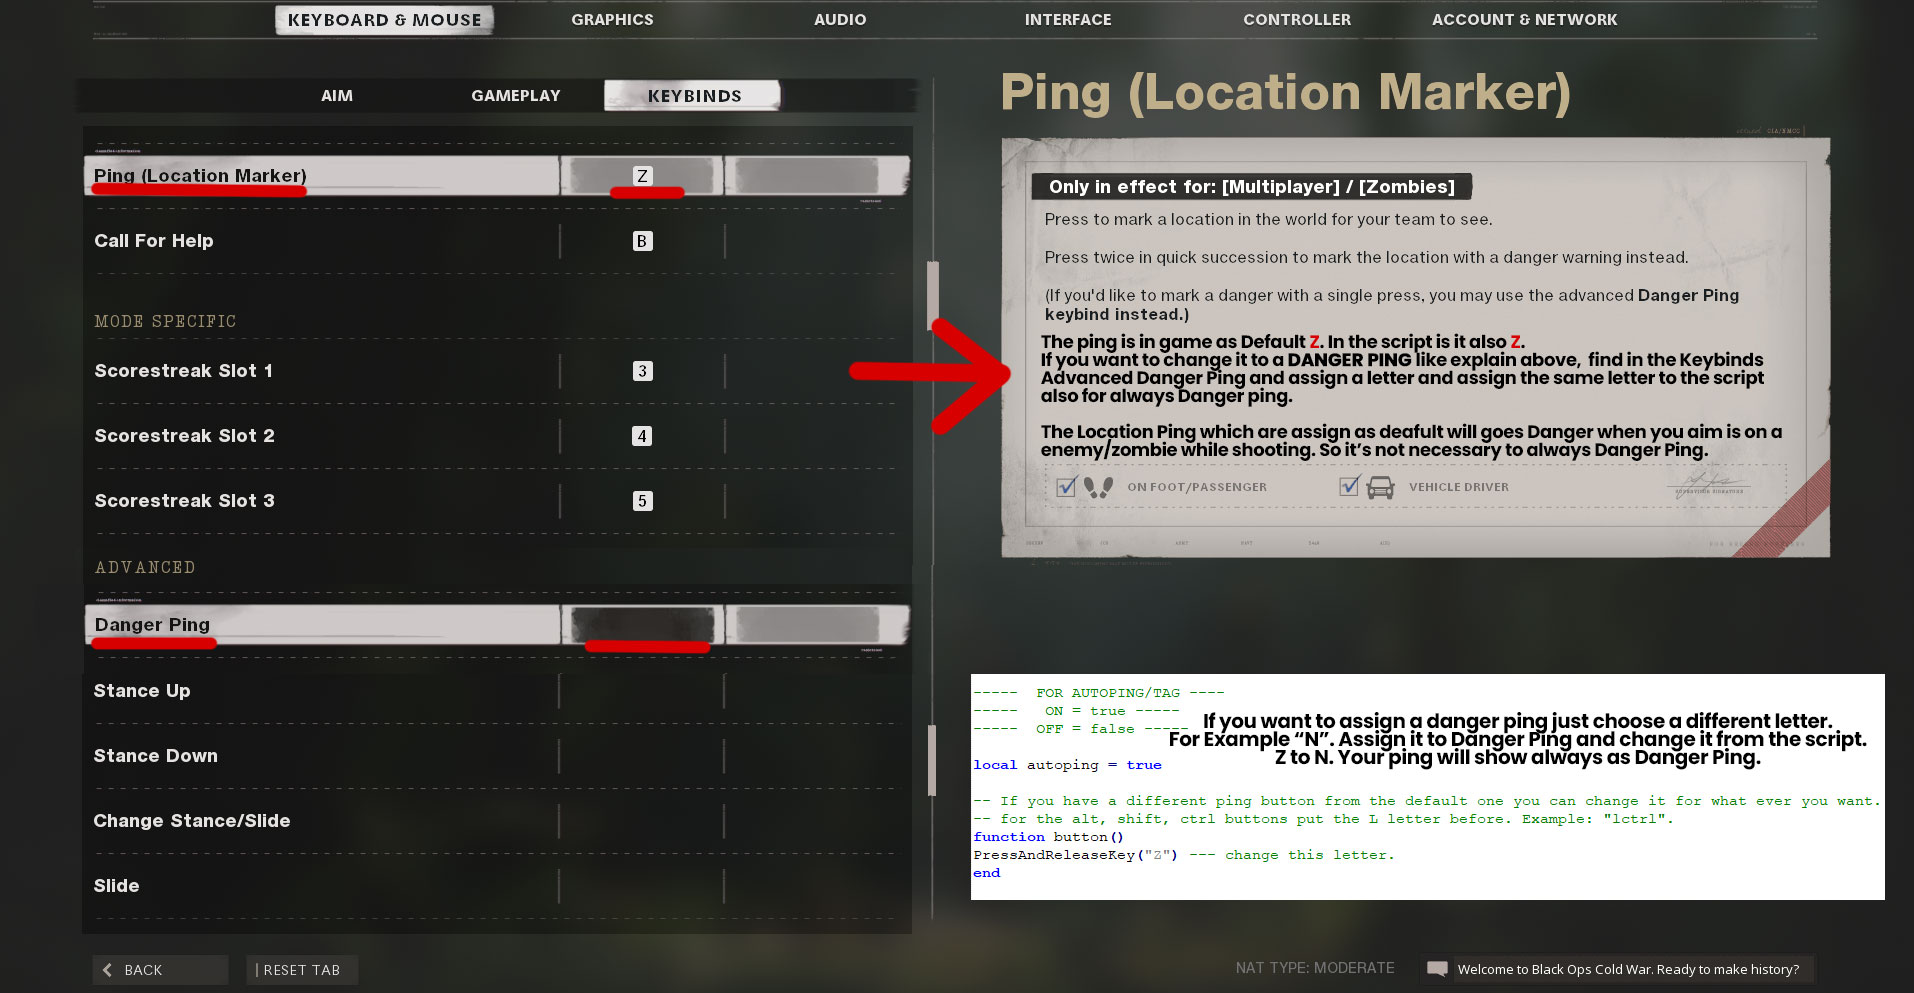 How to use Auto Ping / Auto Tag ?